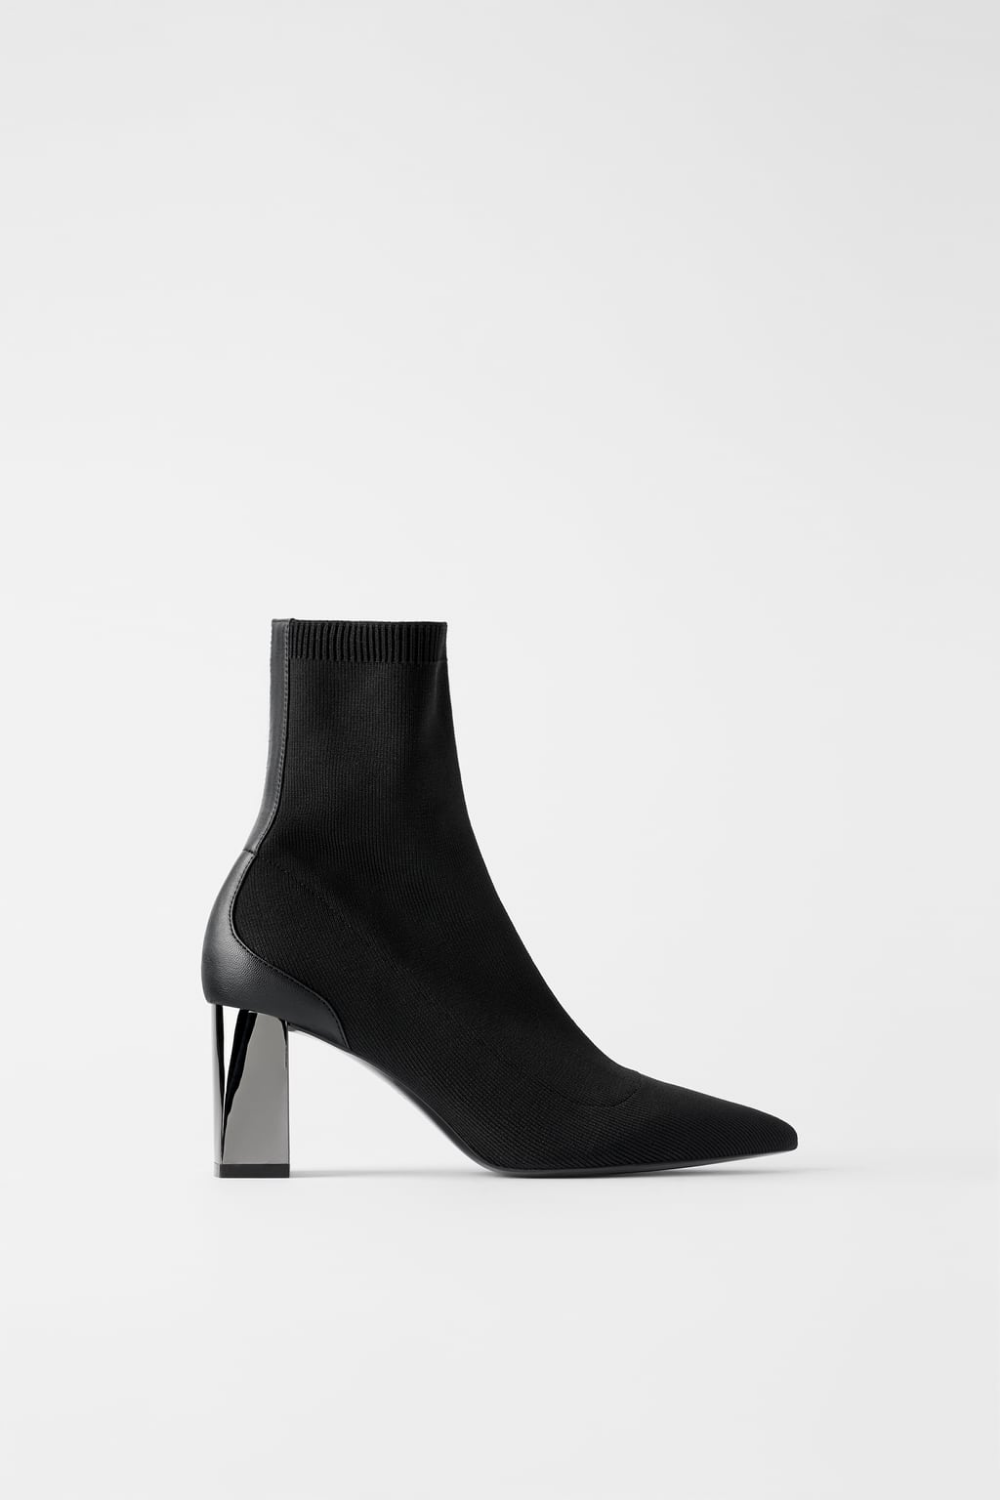 Stretch Ankle Boots With Metallic Heel Detail Heel Stretch Metallic Heels Boots